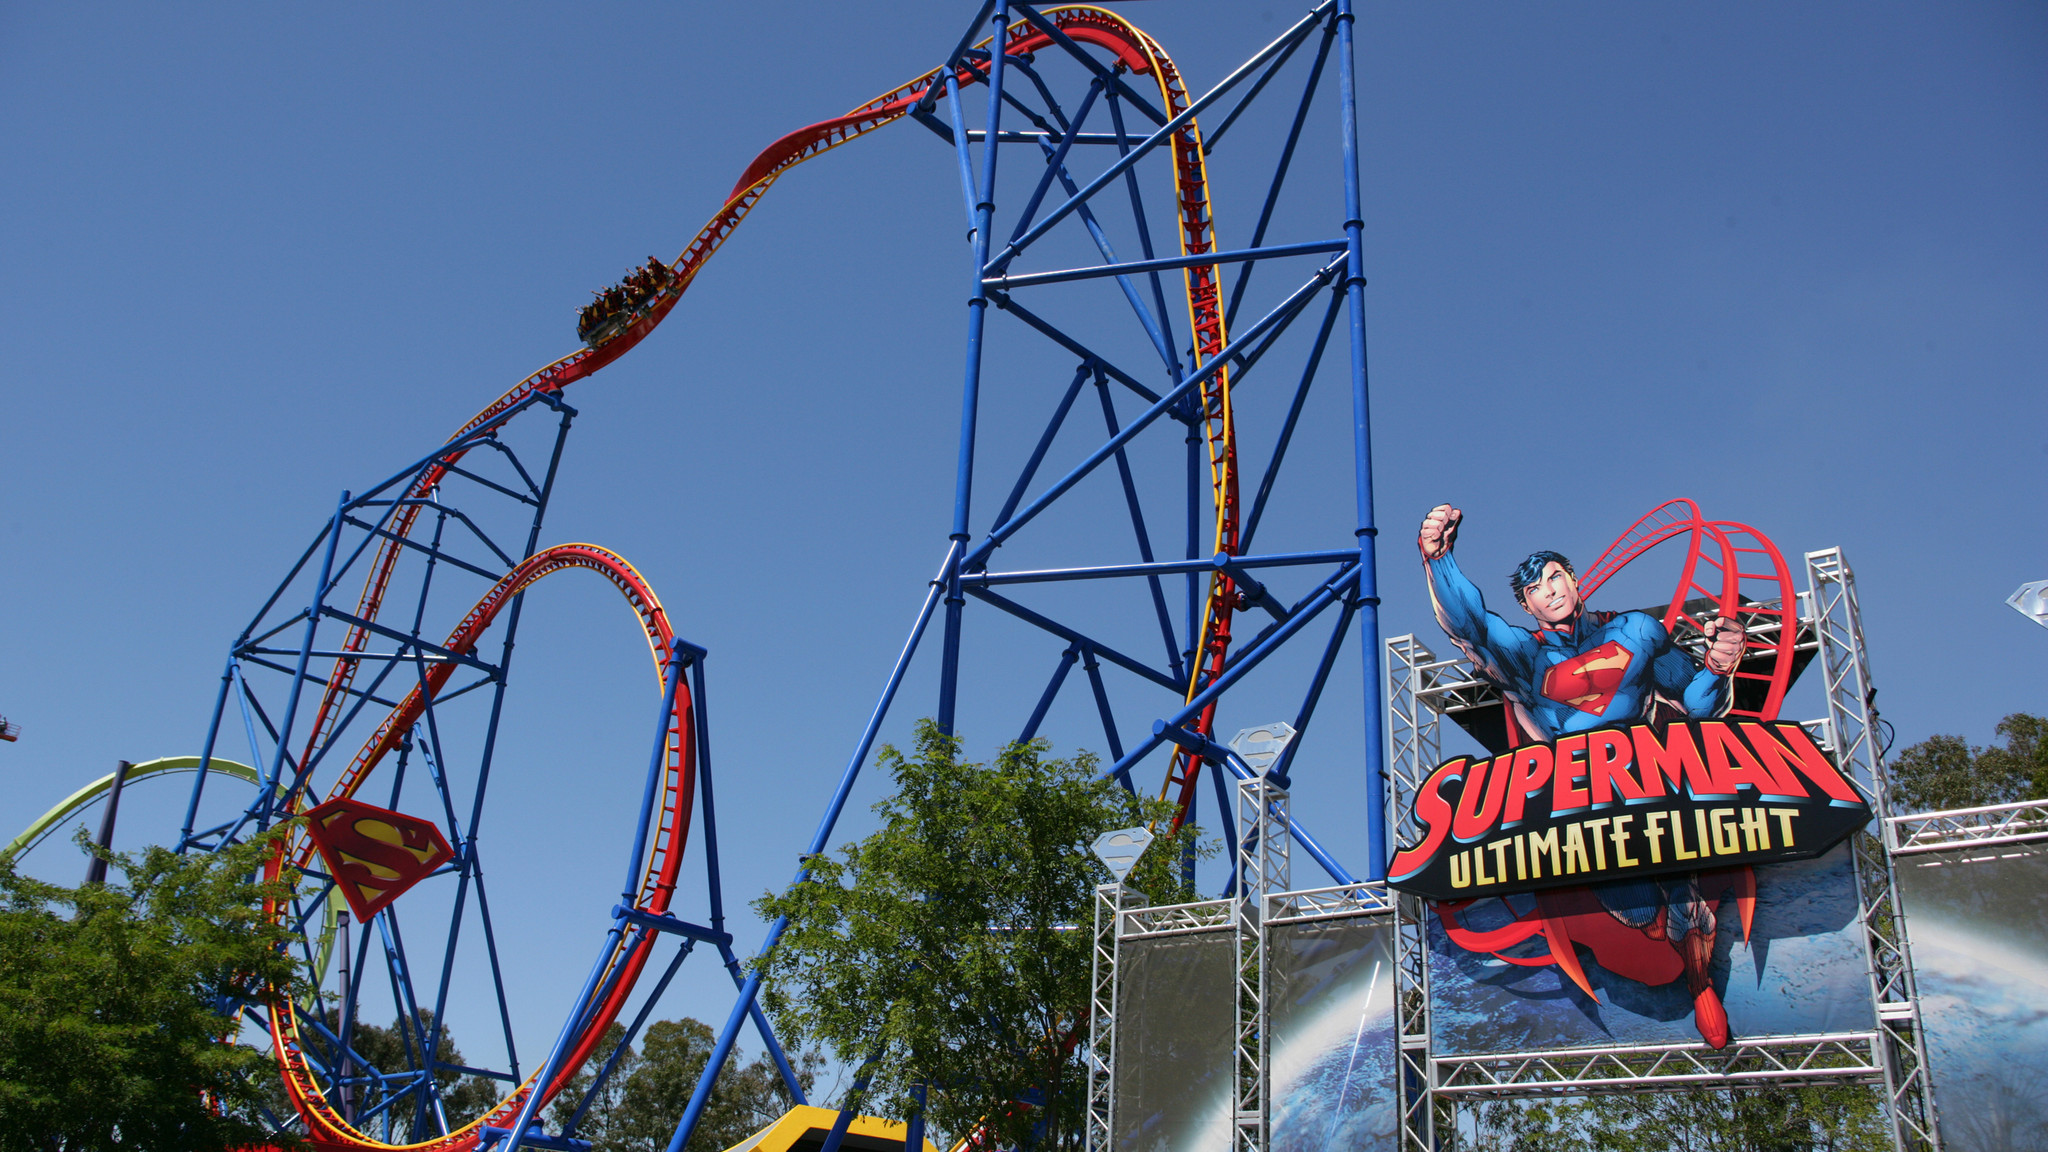 Compact Vertical Coasters Take Thrills To New Heights La Times